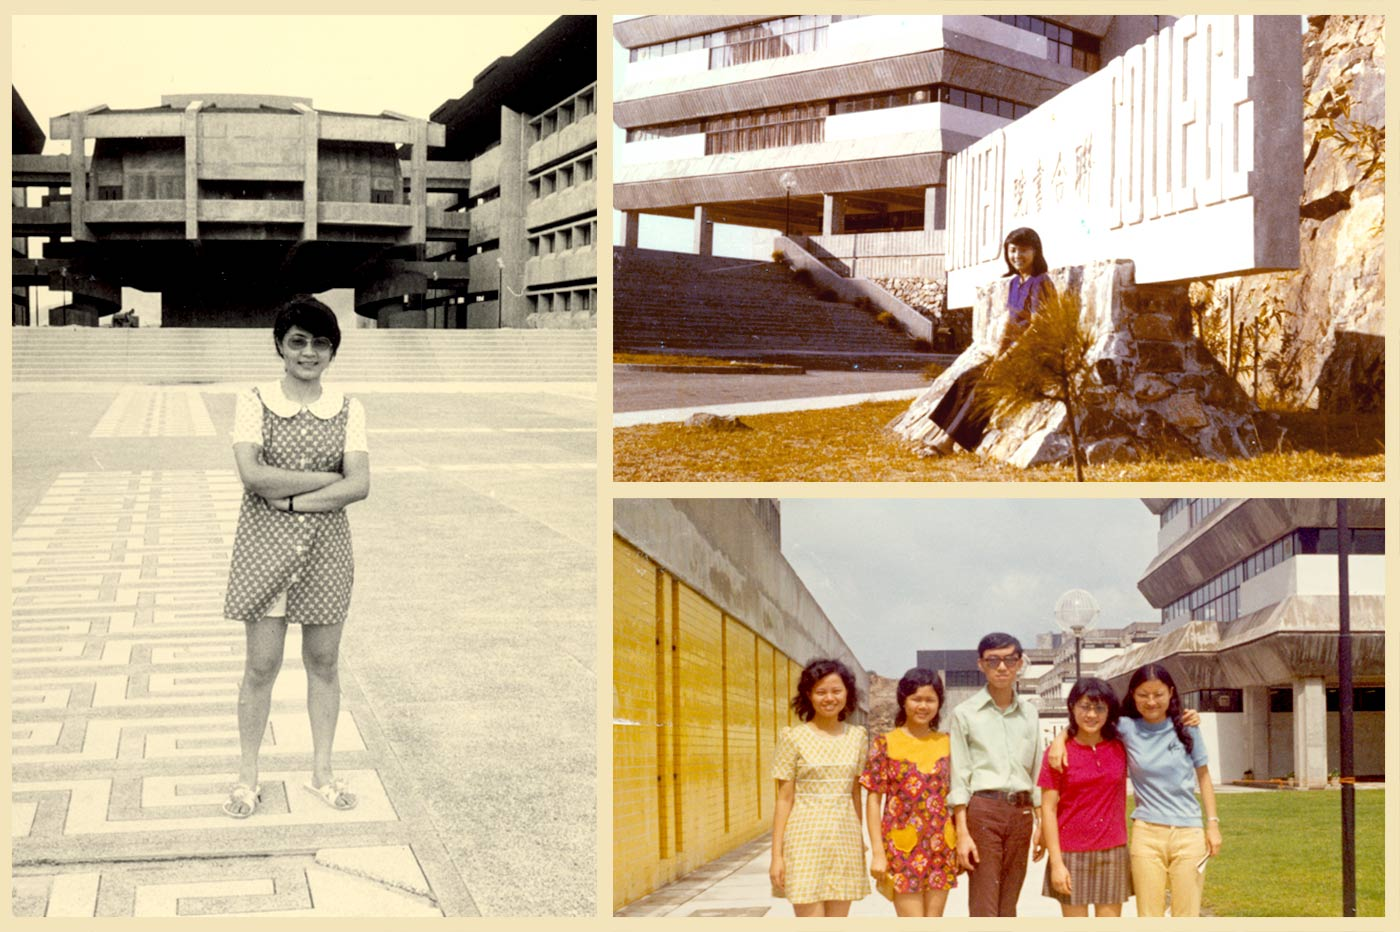 Pictured at the University Mall <em>(left)</em> and the United College of CUHK in the 1970s